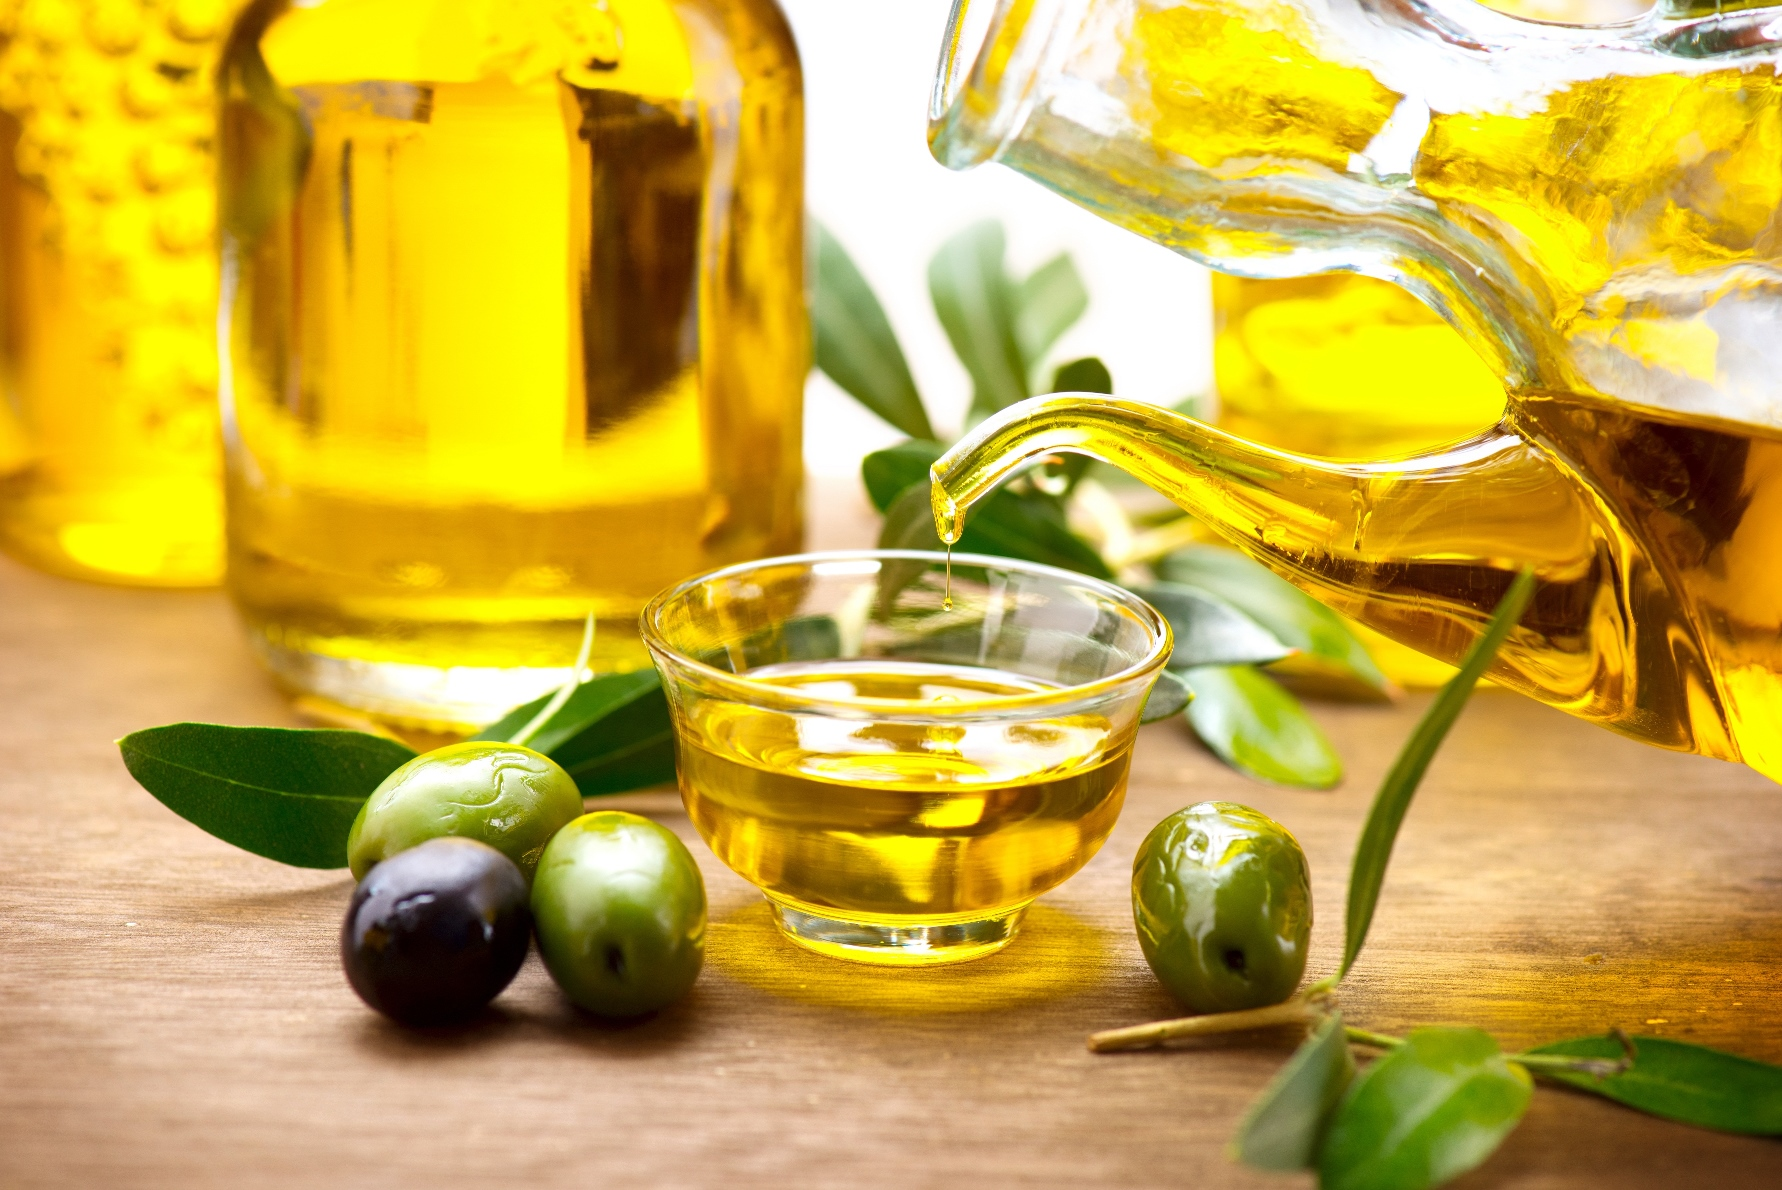 oliveoilpouringfrombottle